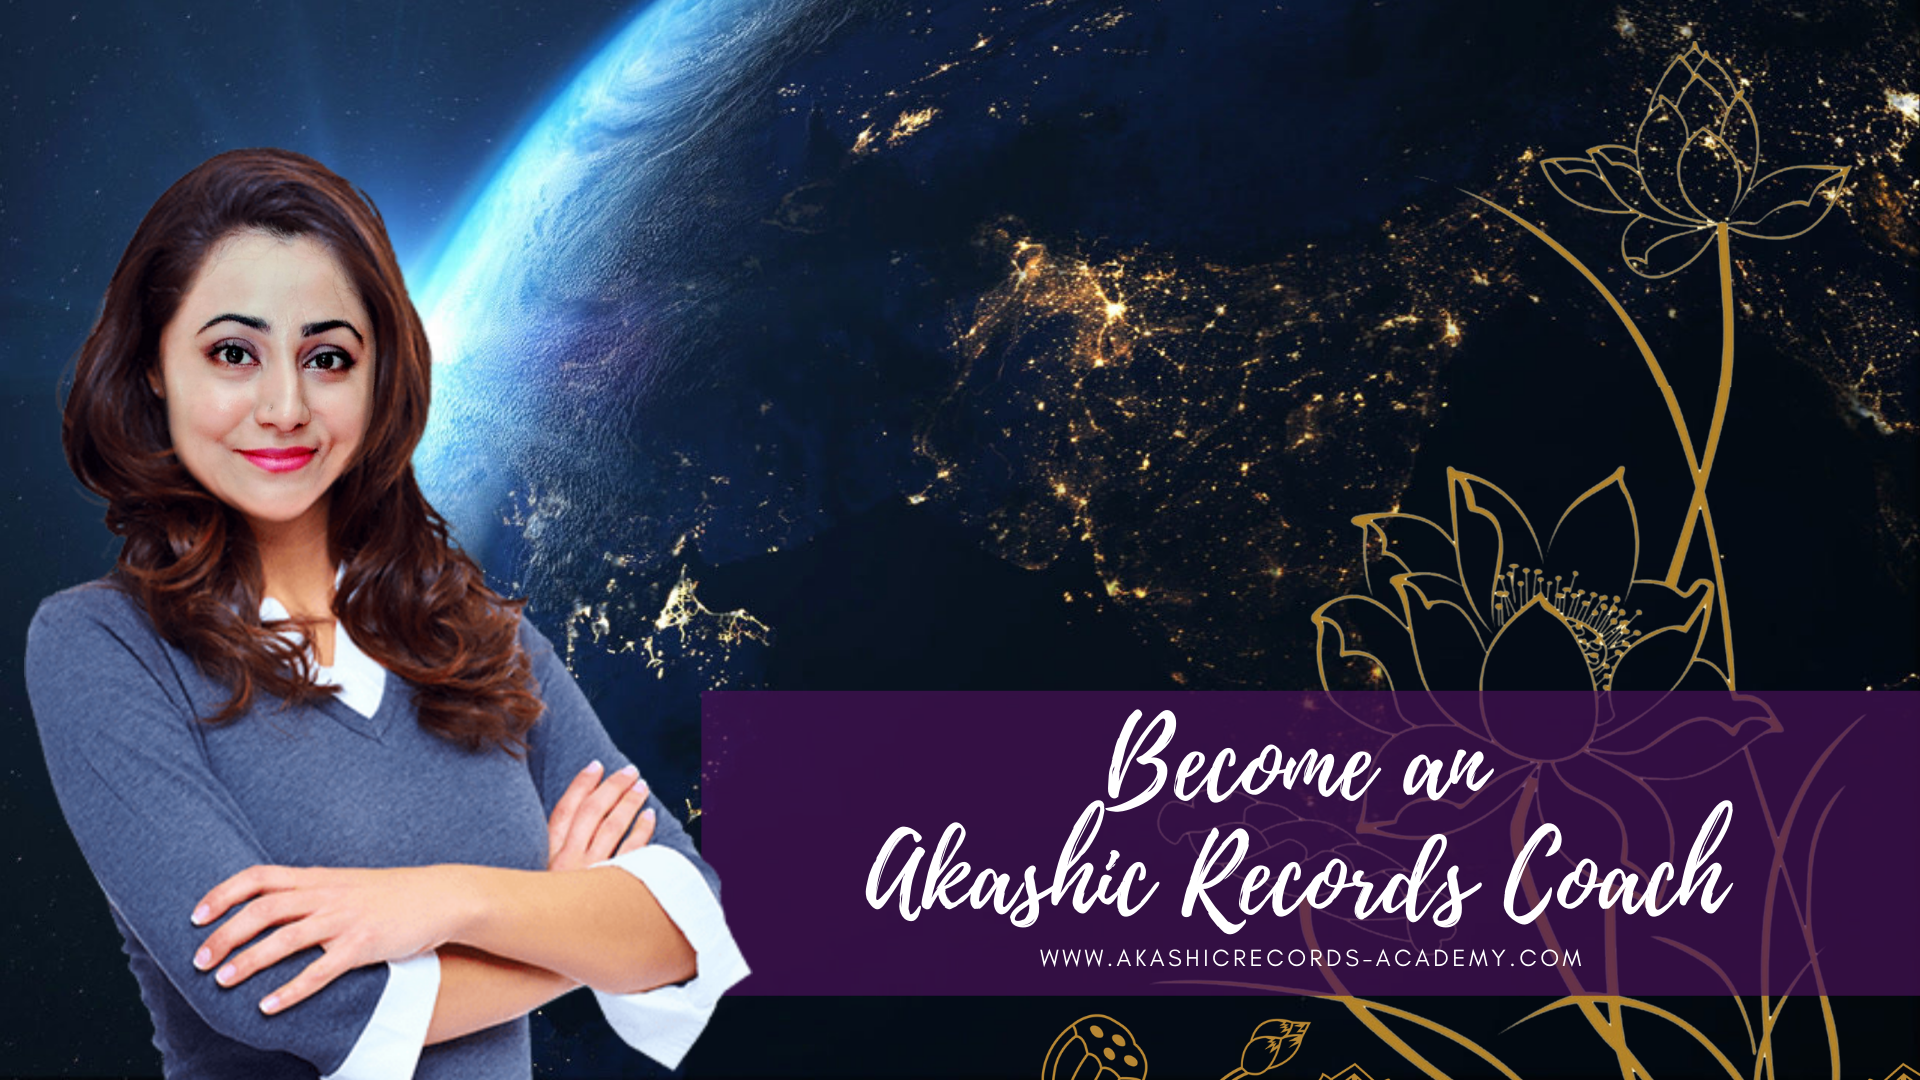 Become an Akashic Records Coach